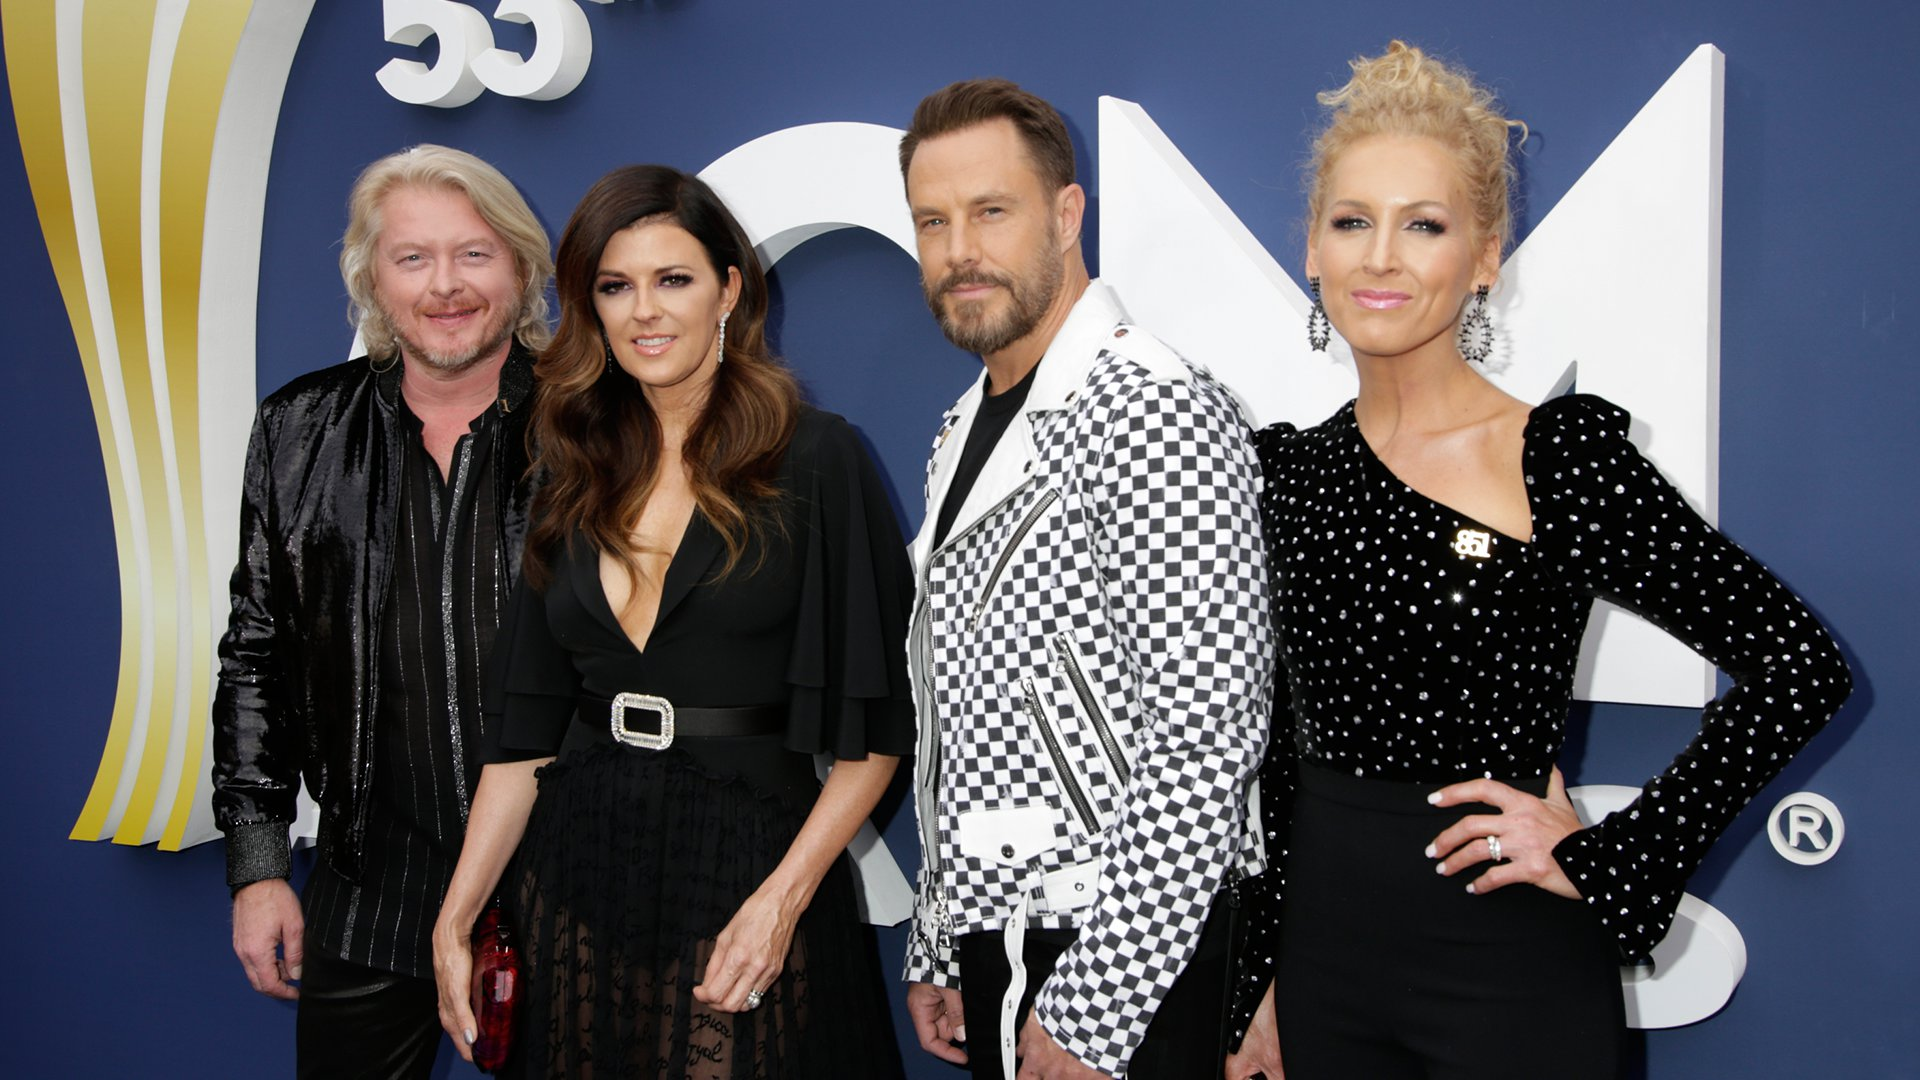 Little Big Town look like a monochromatic dream come true.